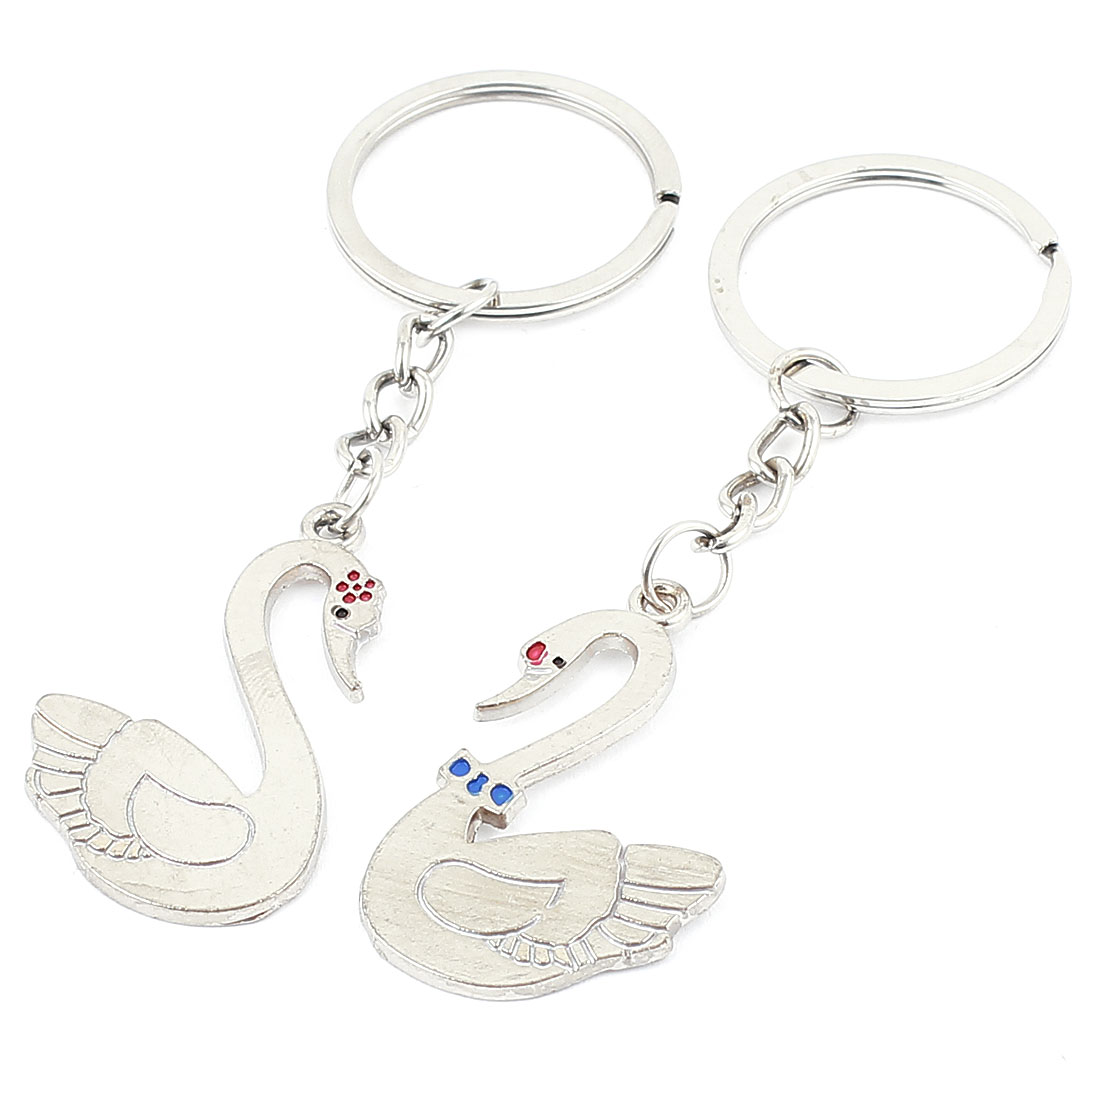 Lover Silver Tone Metal Swan Pendant Keyring Keychain Key Ring Chain Bag Ornament 9cm Long Pair